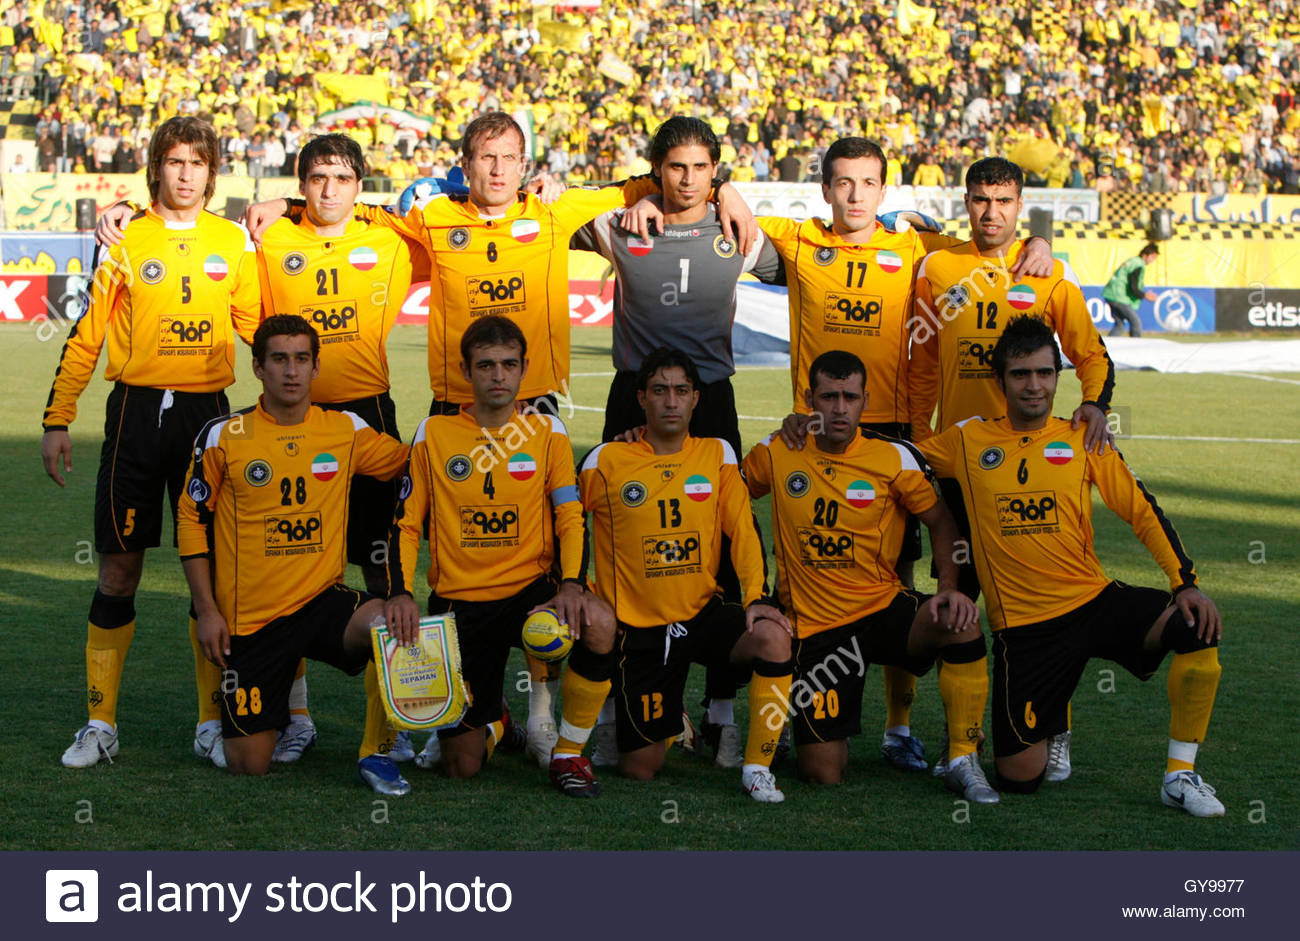 karimi stock photos karimi stock images page alamy s sepahan poses for team photo before their asian champions league final first leg soccer match